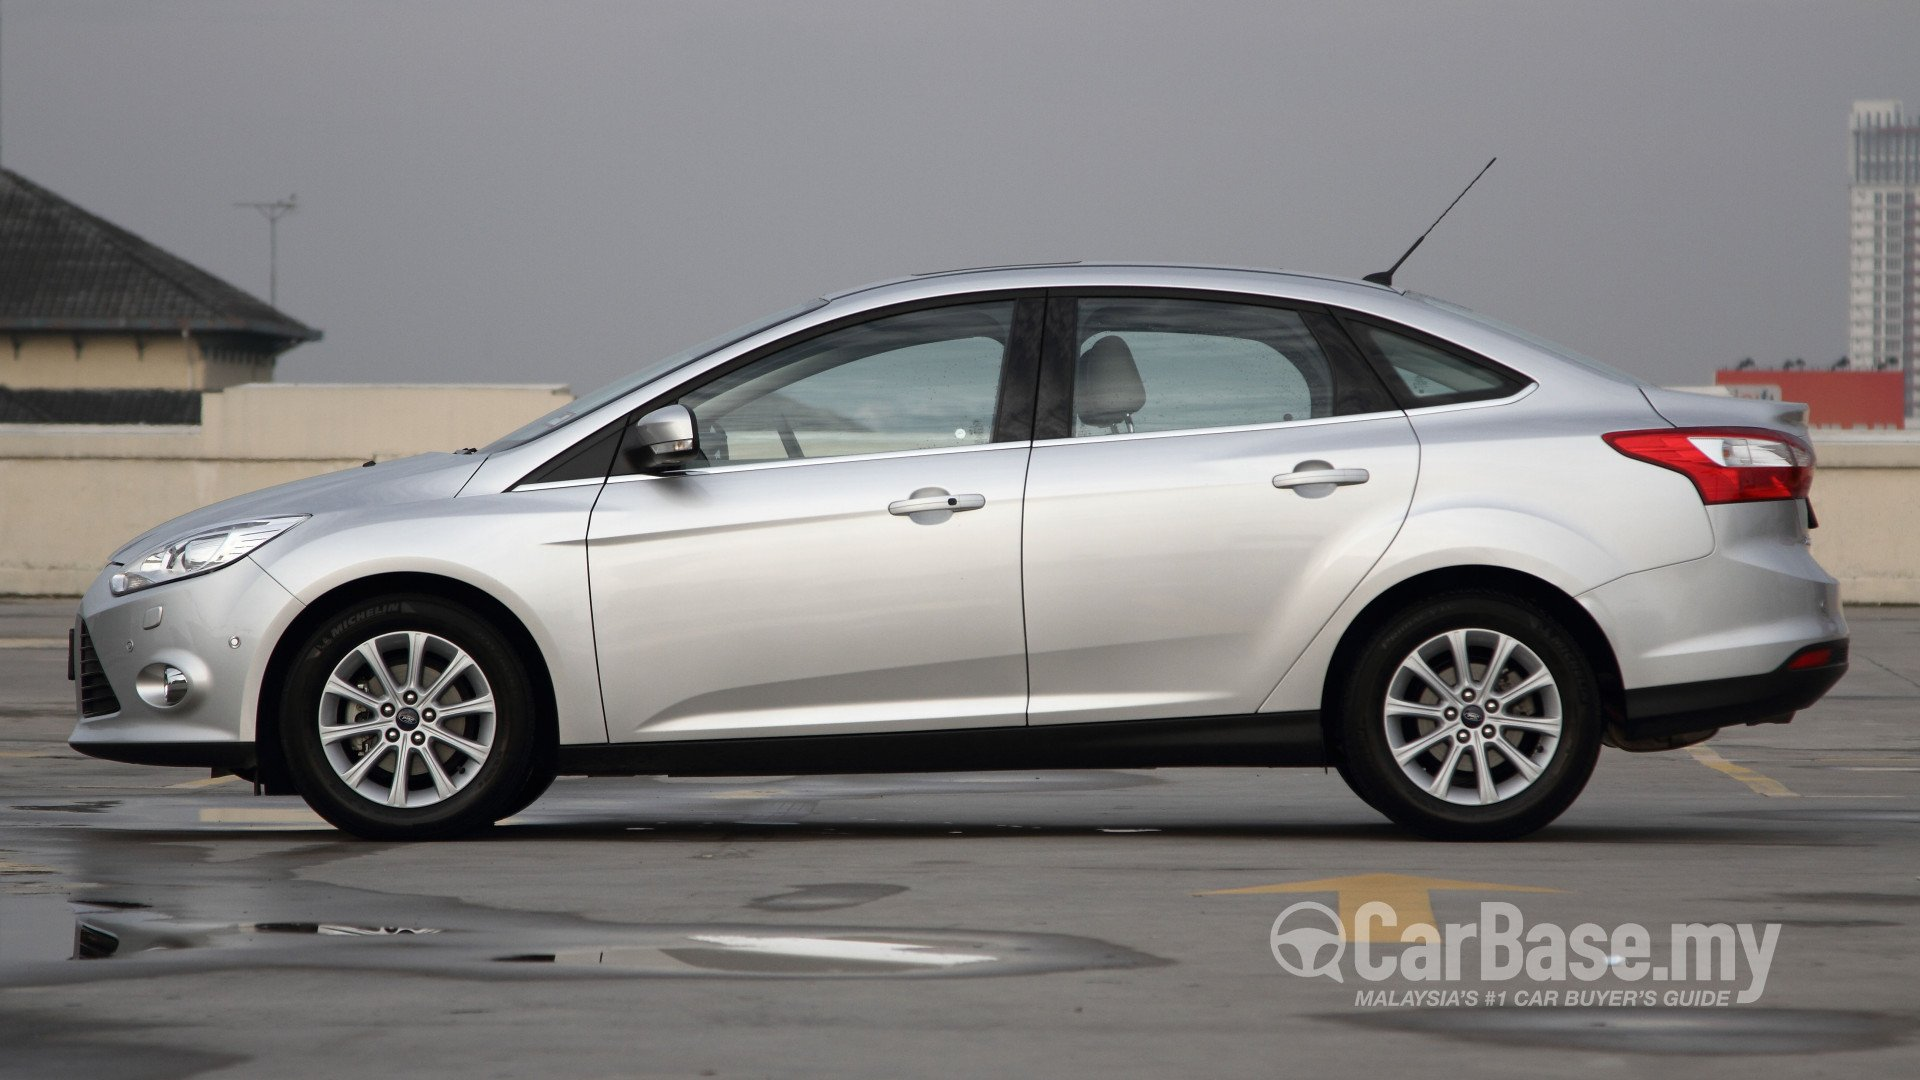 ford focus sedan mk3 2012 exterior image 7938 in malaysia reviews specs prices